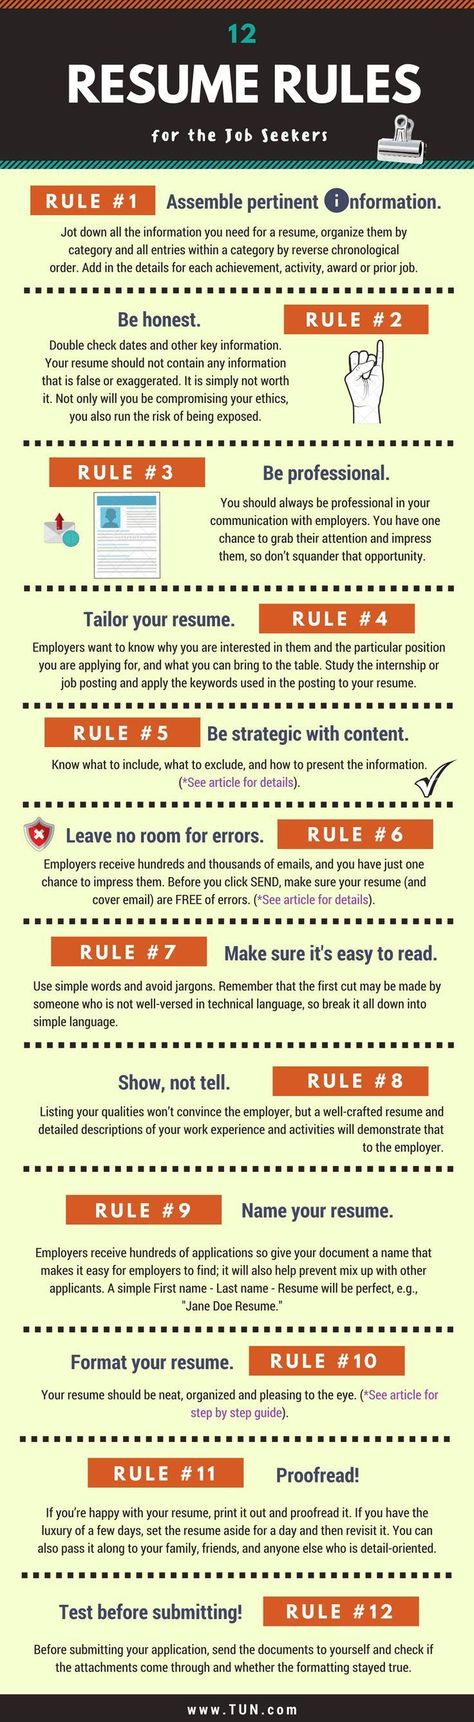 The Complete Resume Guide for College Students – 12 Rules for Resume Perfection! | The University Network